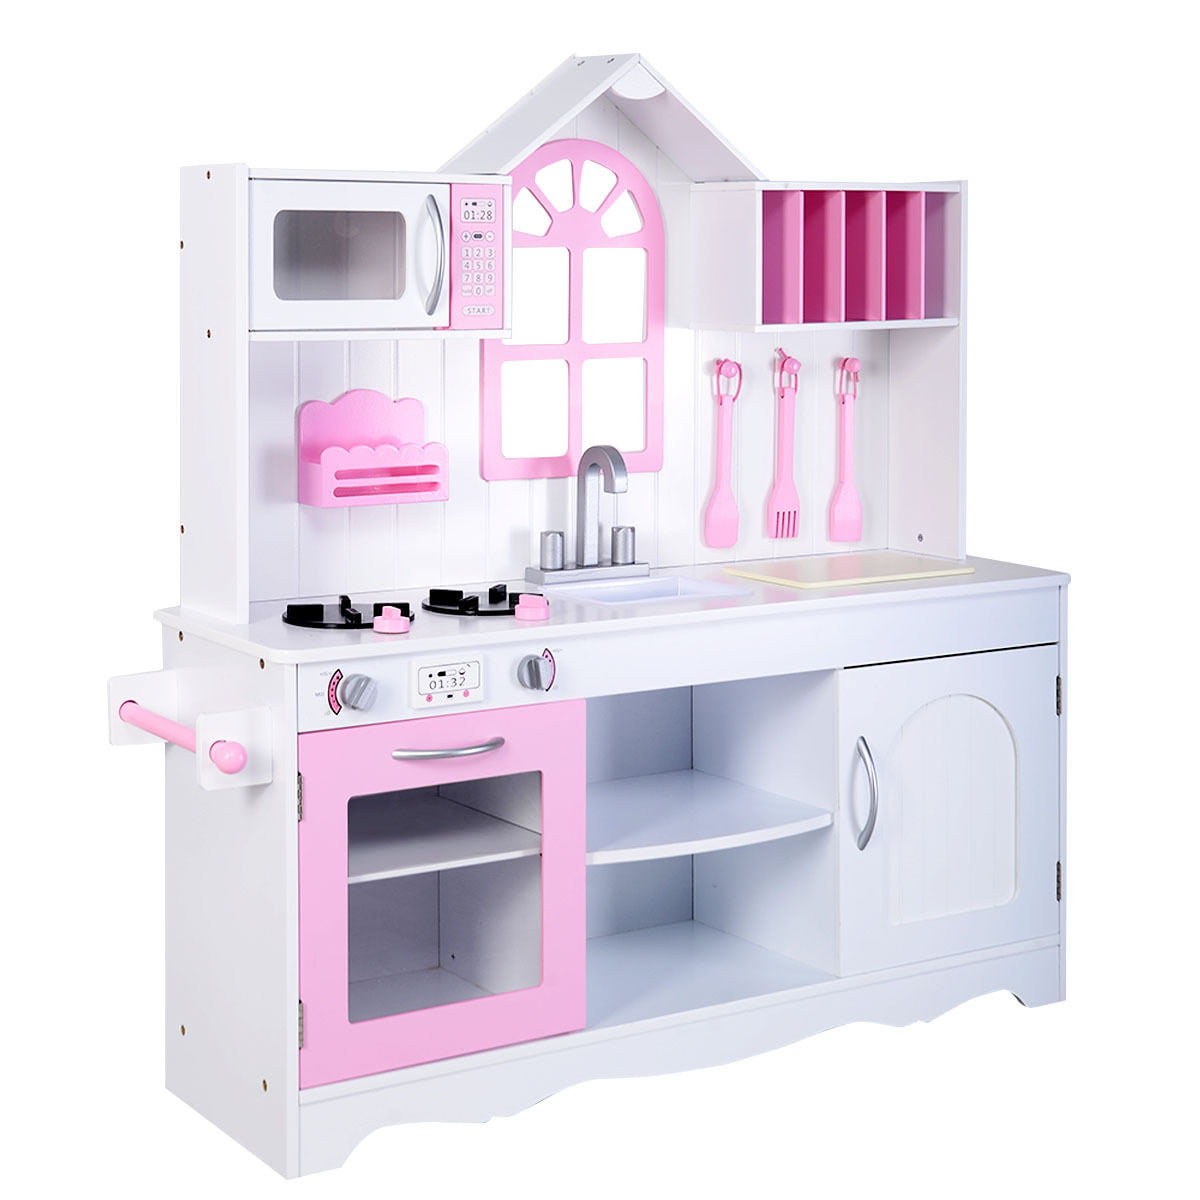 Costway Kids Wood Kitchen Toy Cooking Pretend Play Set Toddler Wooden Playset by Costway